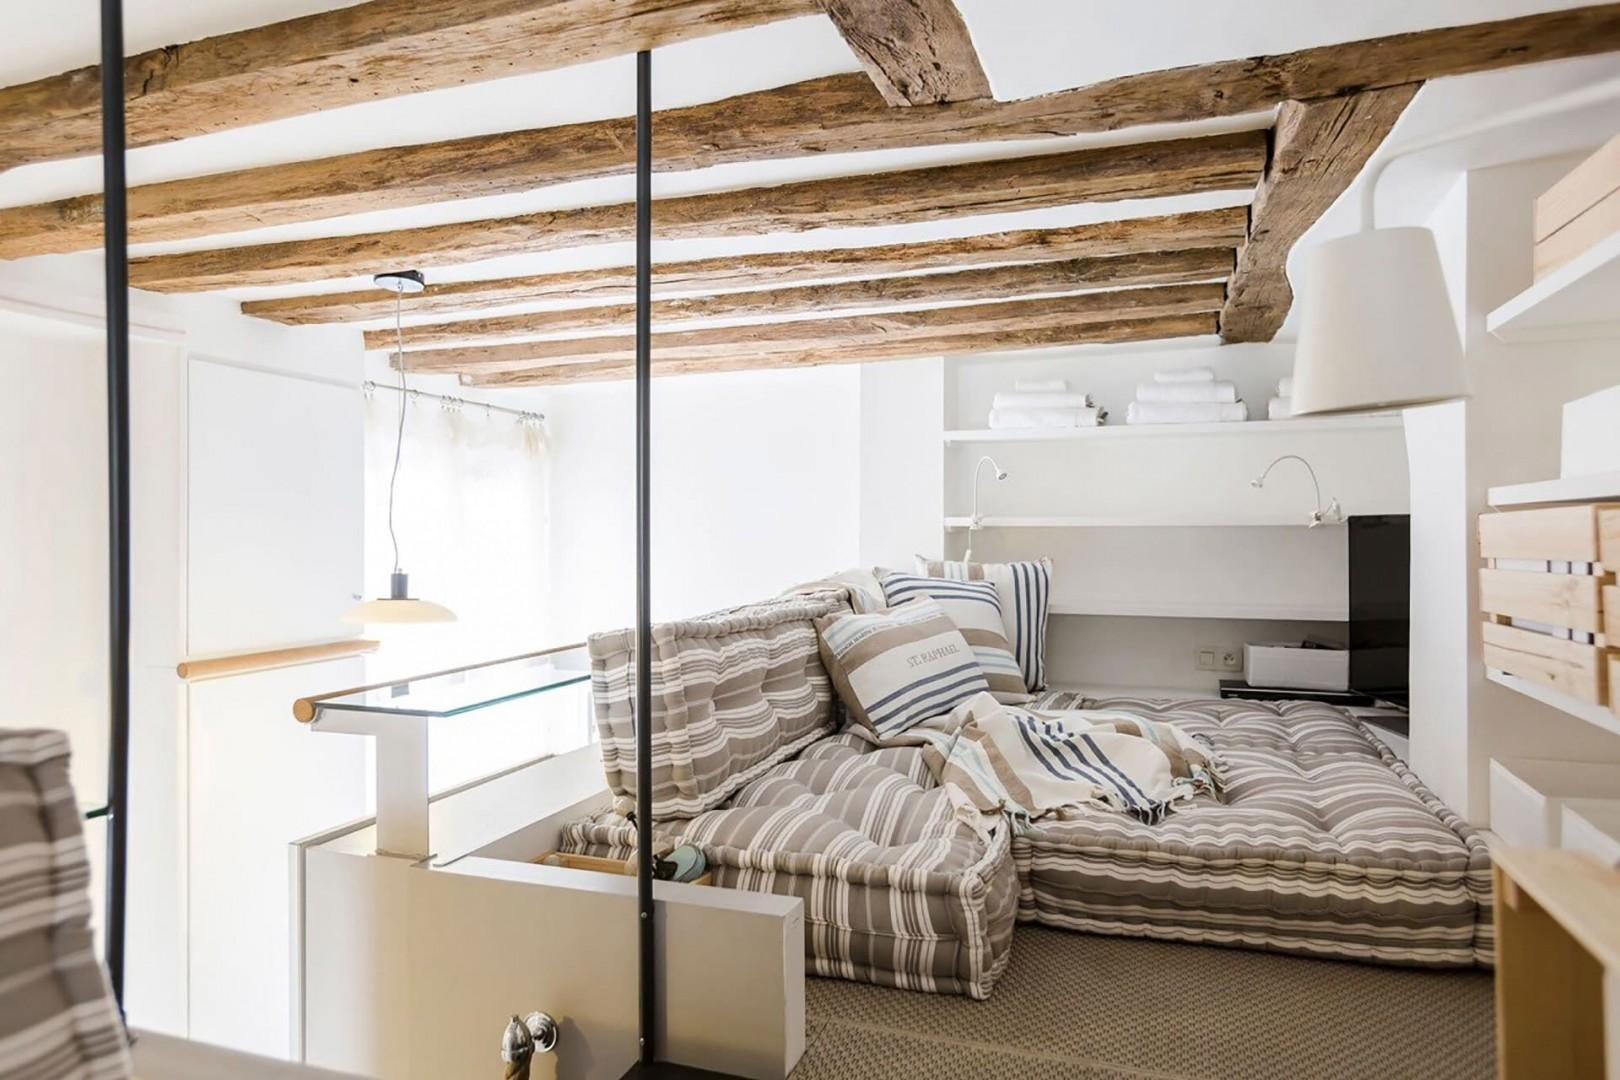 Enjoy a moment of true relaxation in the cozy and intimate loft.